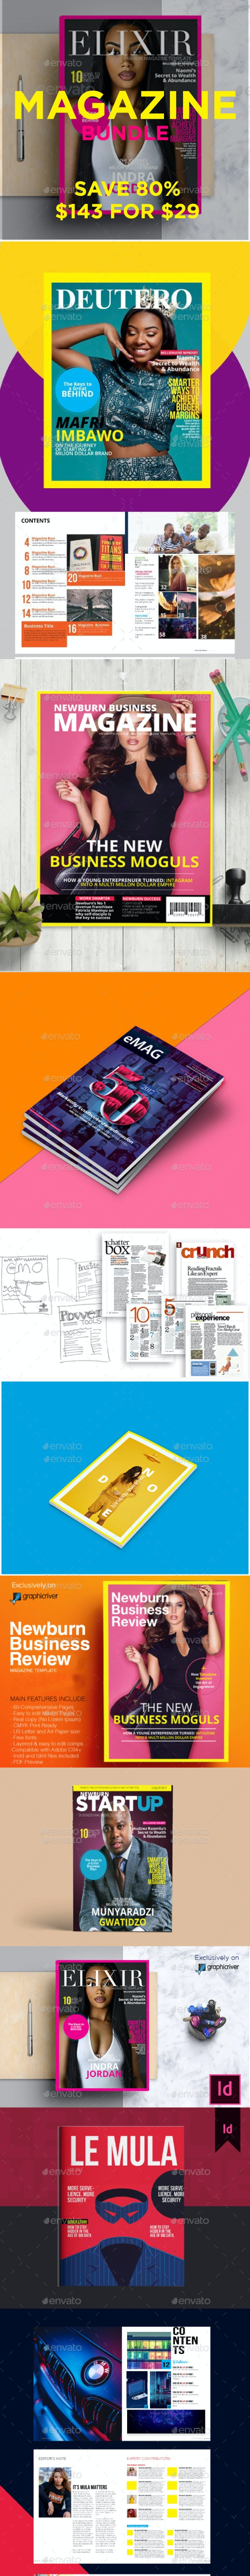 The Ultimate Magazine InDesign Print Template Bundle - Magazines Print Templates